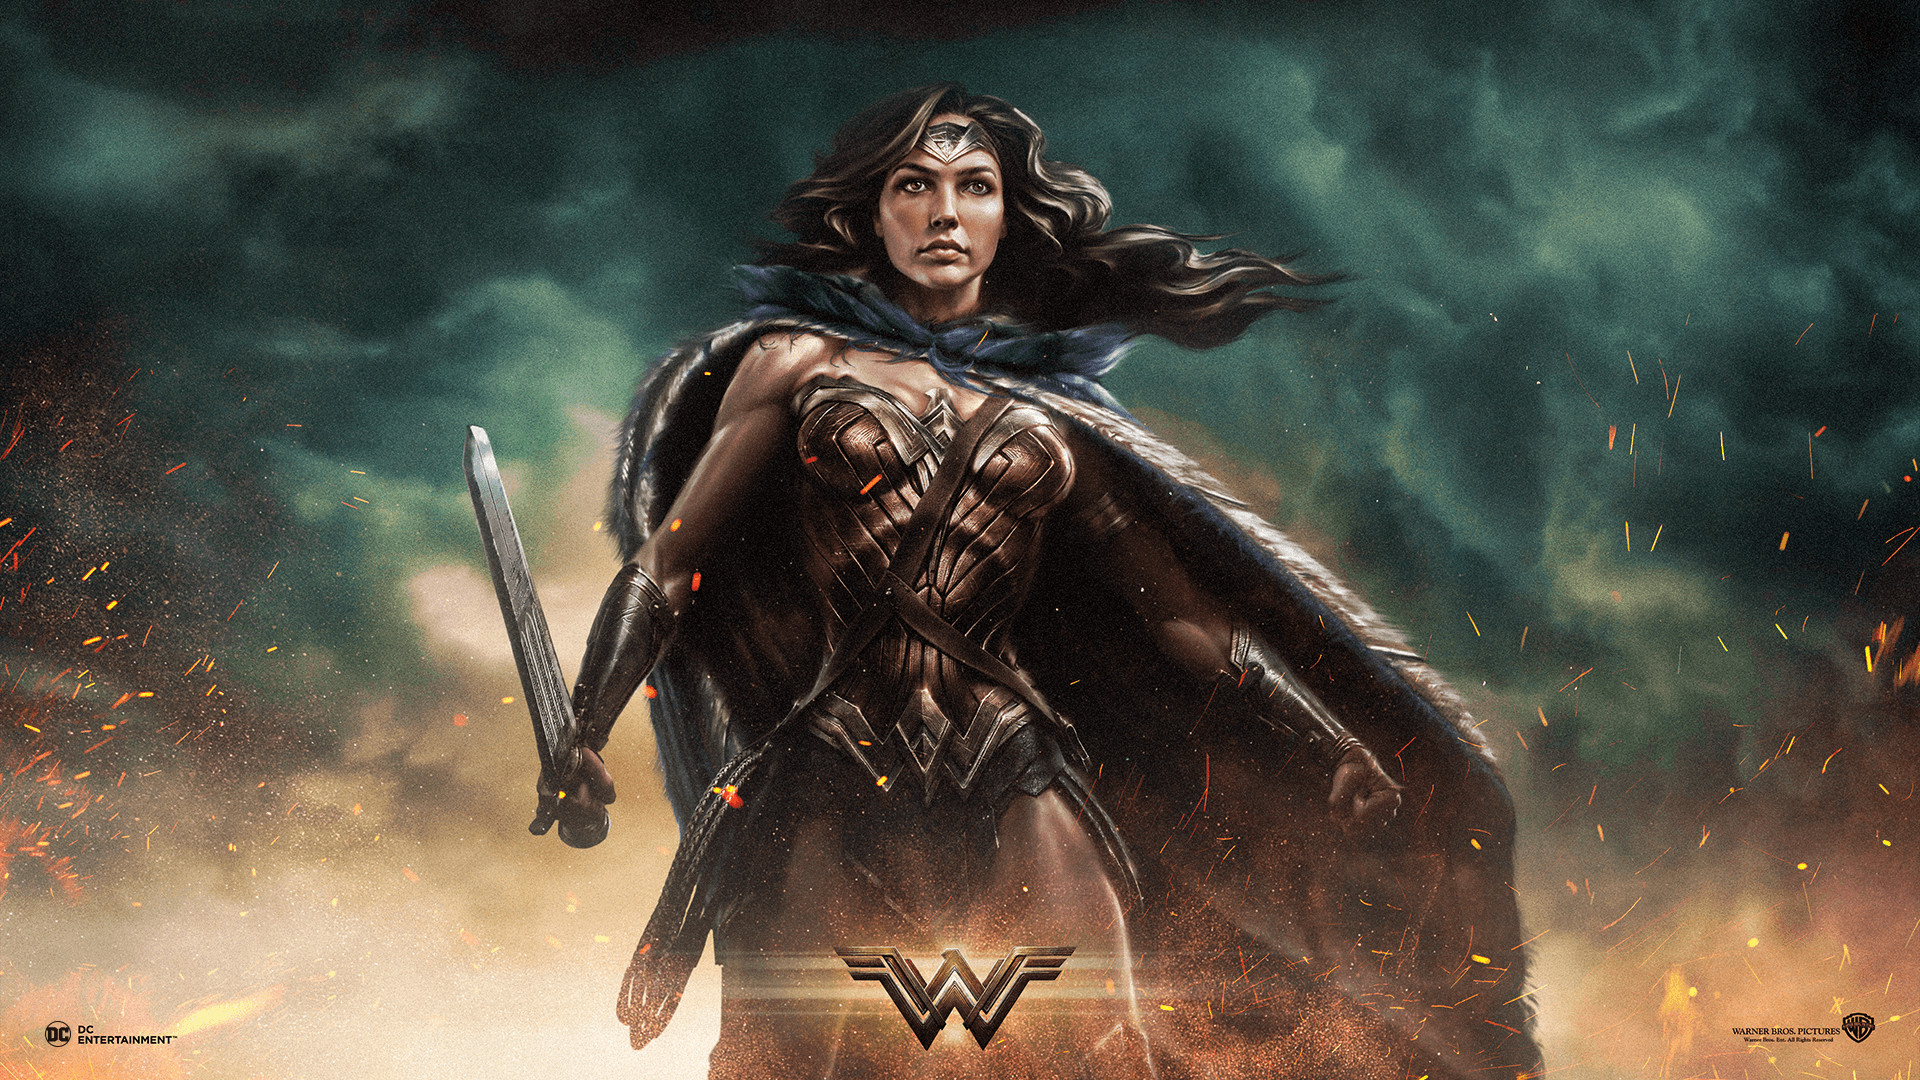 1920x1080 Wonder Woman Wallpaper ~ Sdeerwallpaper